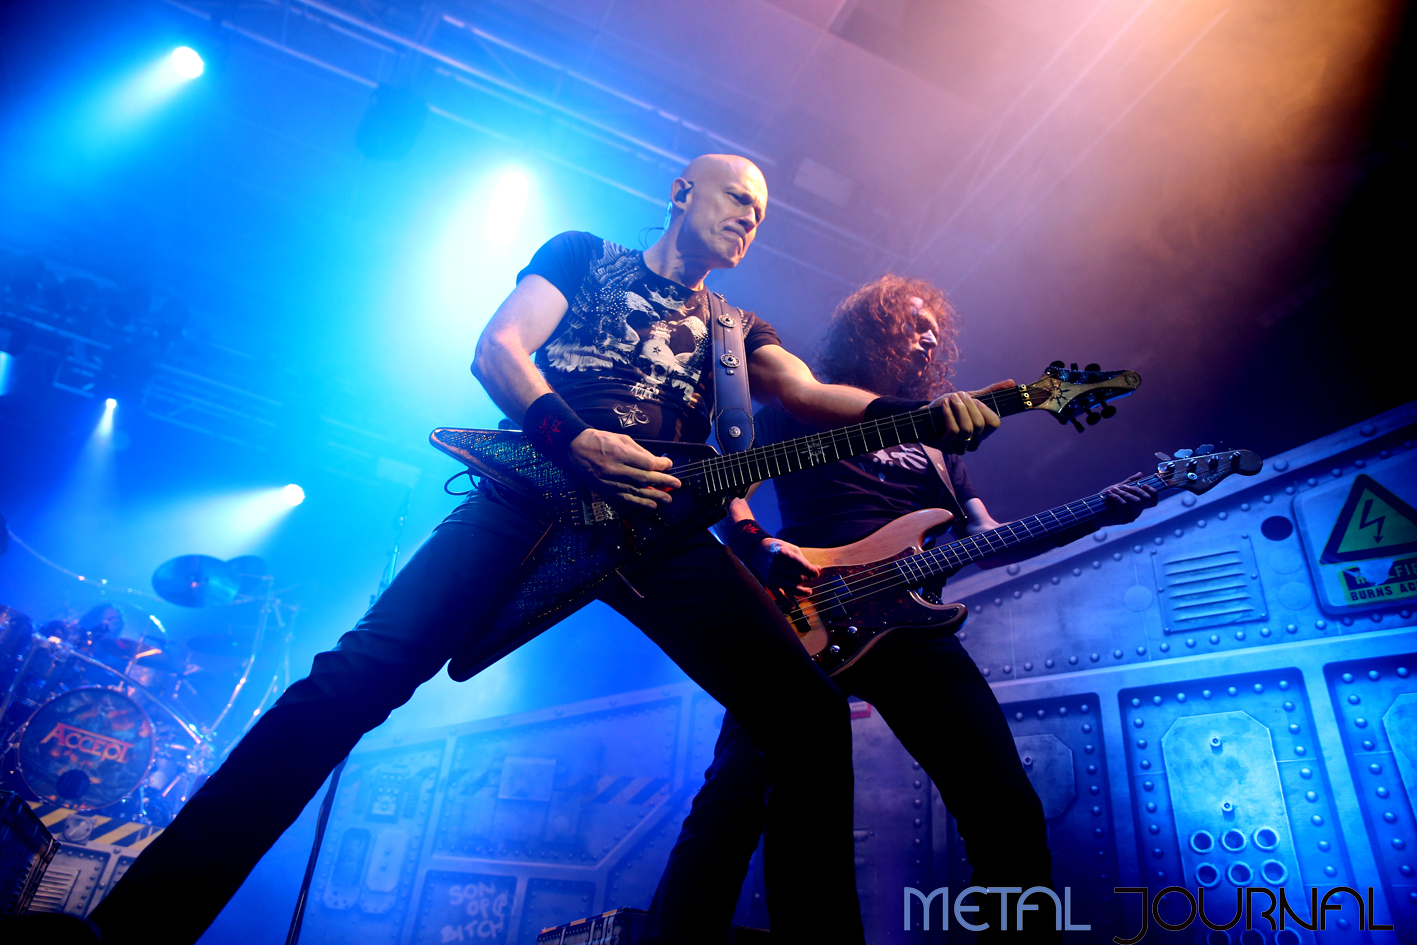 accept - metal journal 2018 pic 1